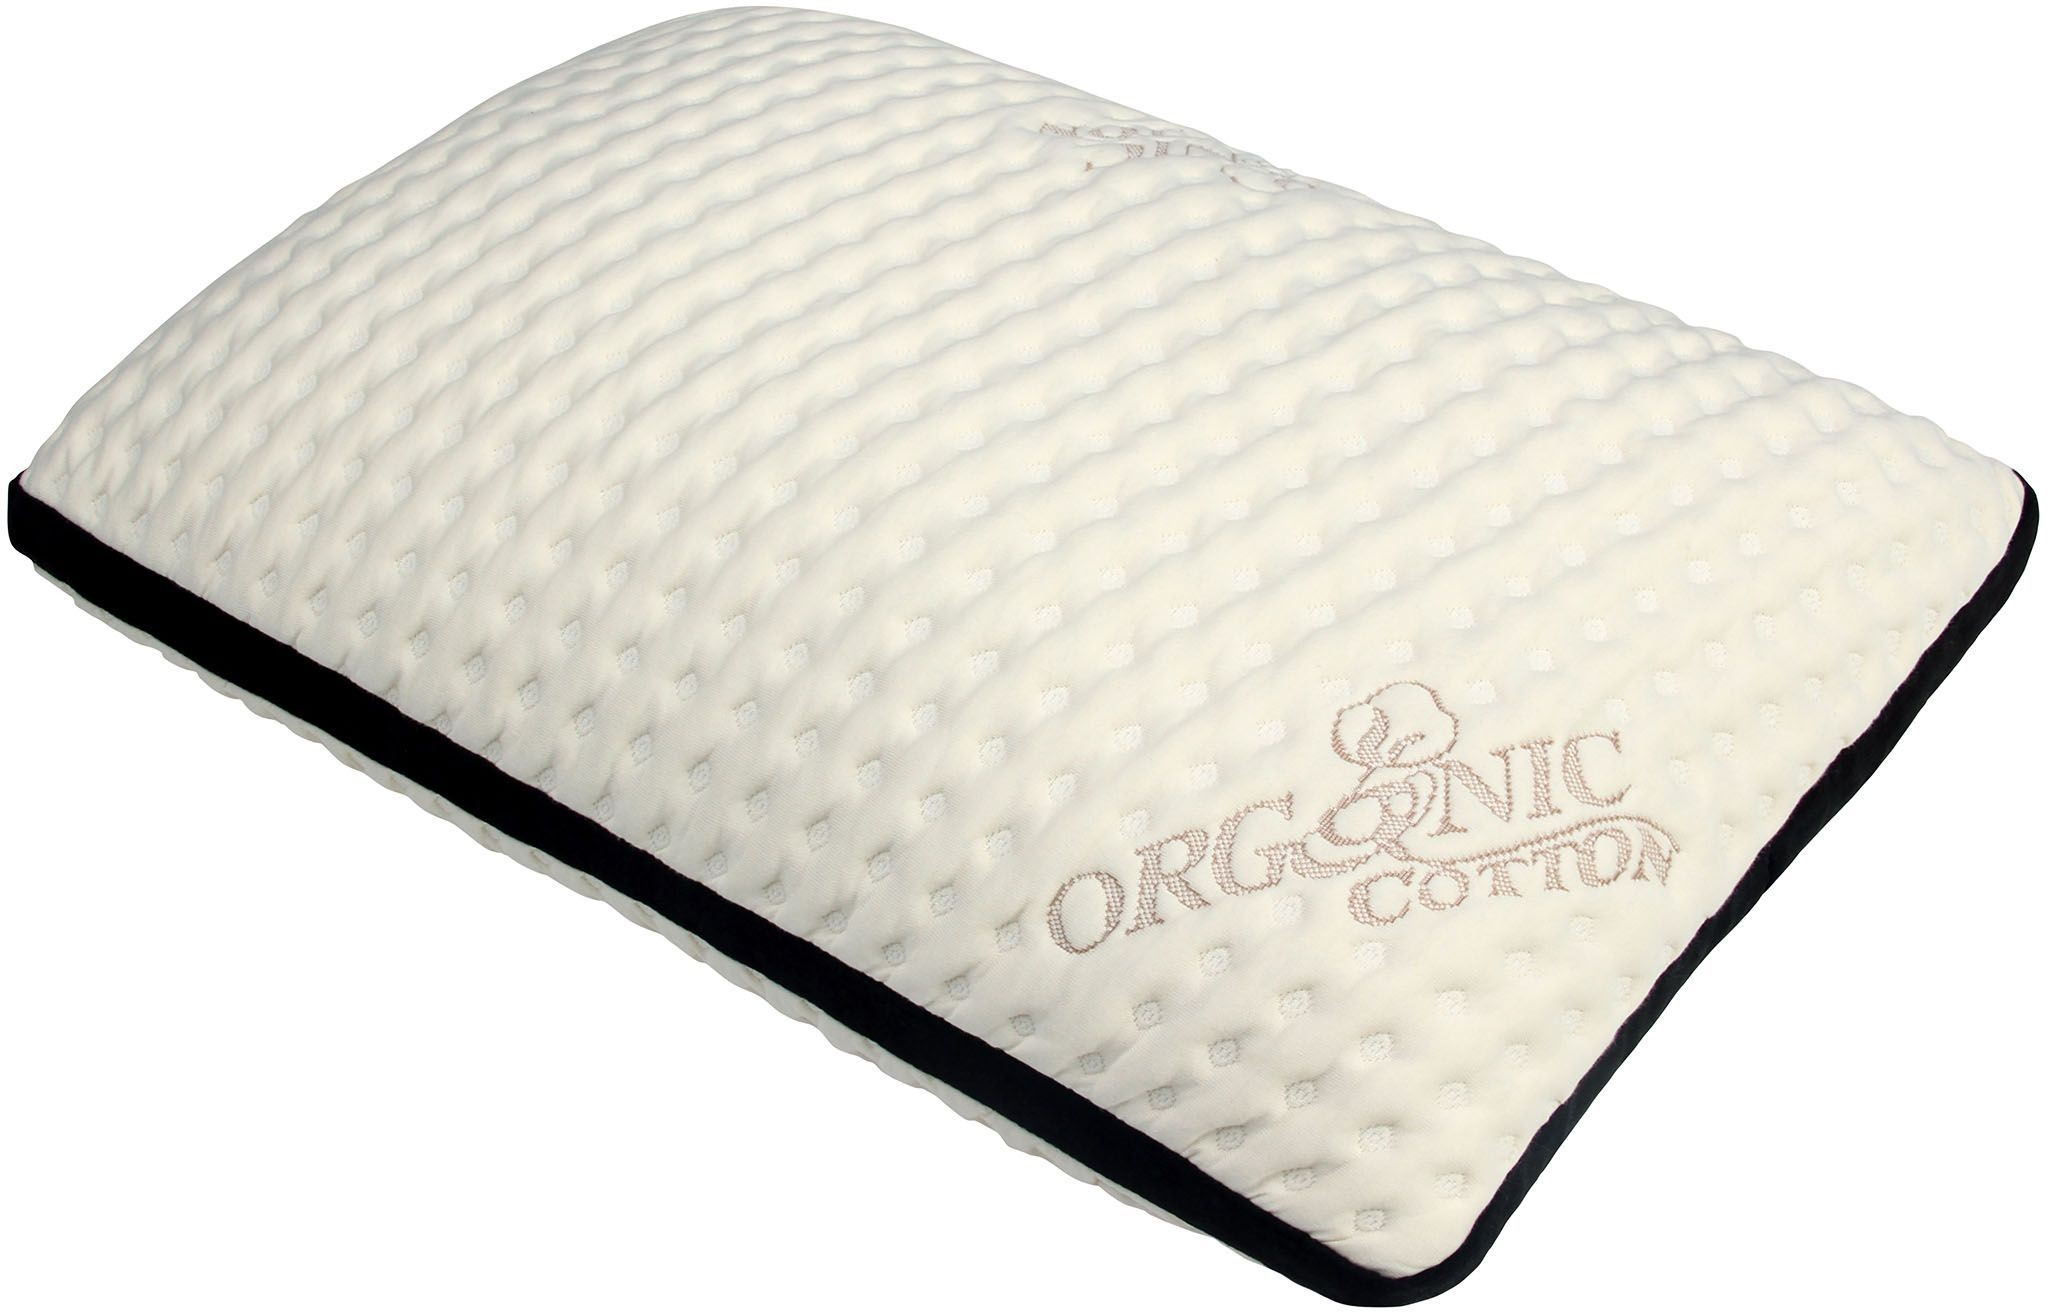 Gel Infused Memory Foam Pillow Jonquille Gel Infused Memory Foam Pillow